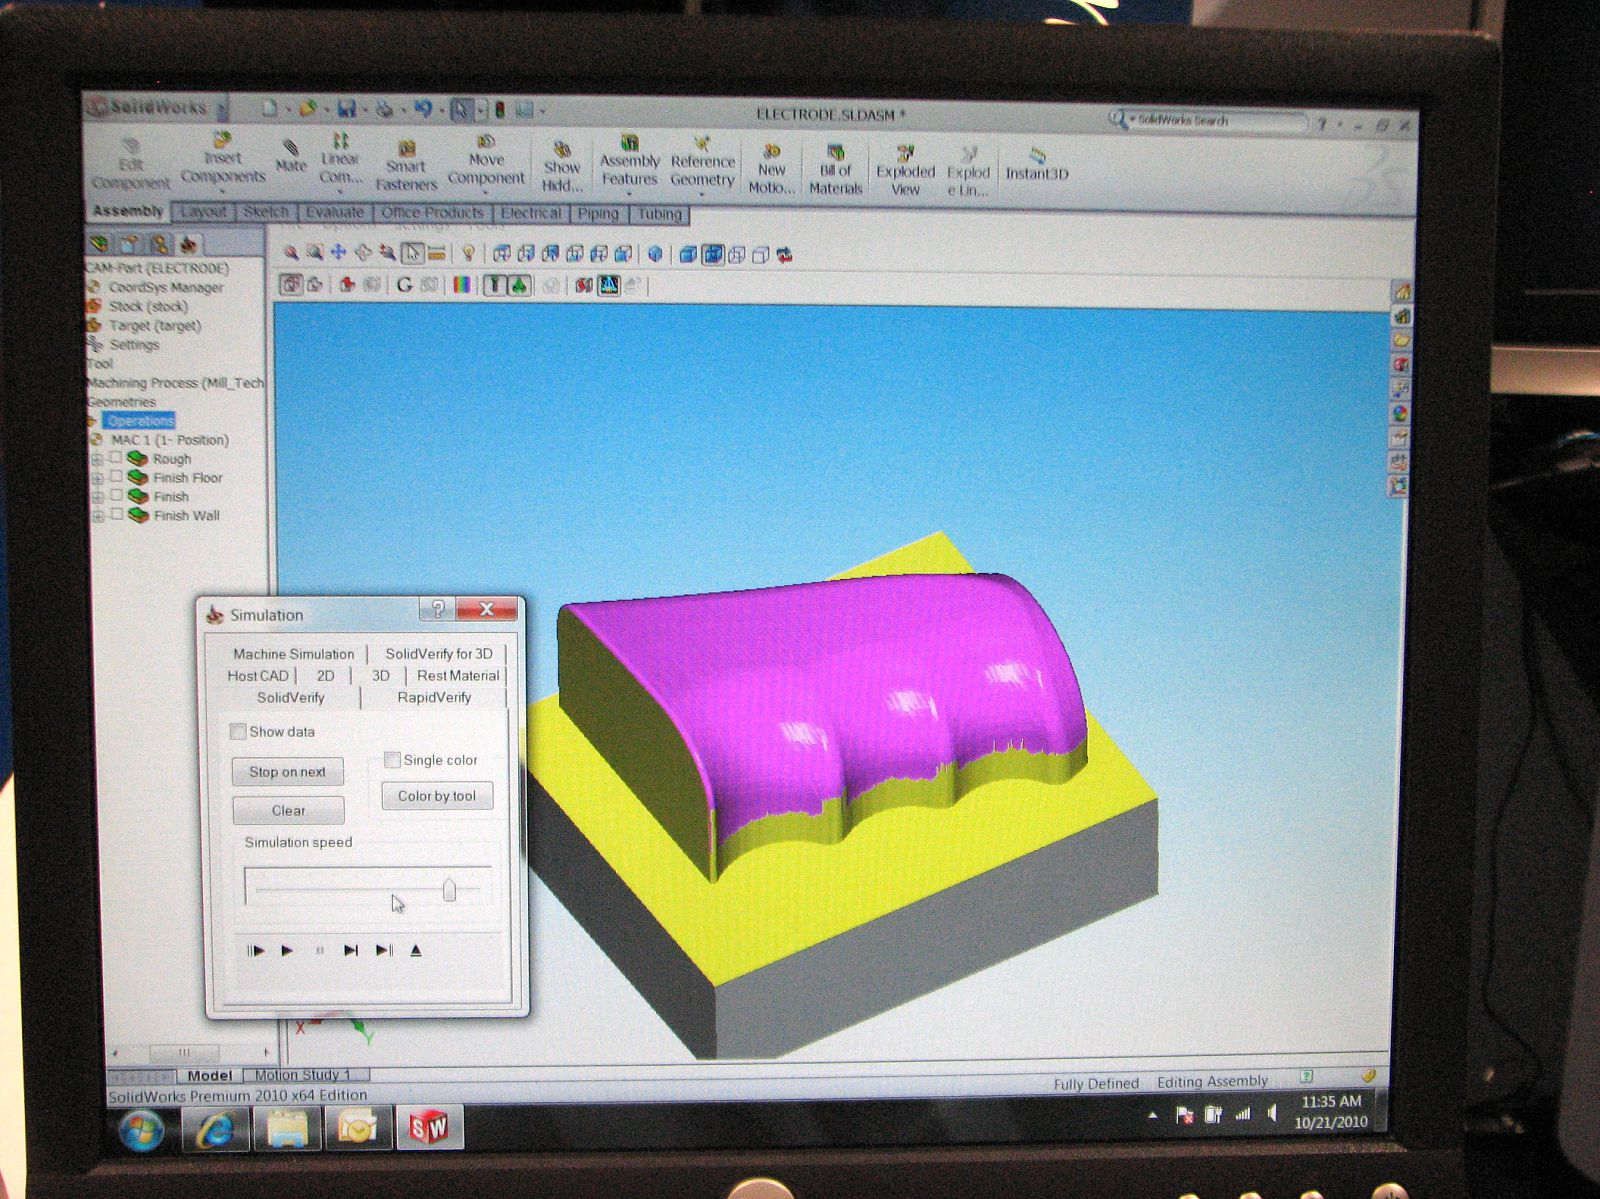 Our Blog Solidworks Tutorials 3d Printing Tips Cad News My First Circuit Board Designed Prototyped Assembled By Flickr David Northup And Bill Hall Of Dayton Ohio Office Staffed The Fisher Unitech Booth At Advanced Manufacturing Technology Show On October